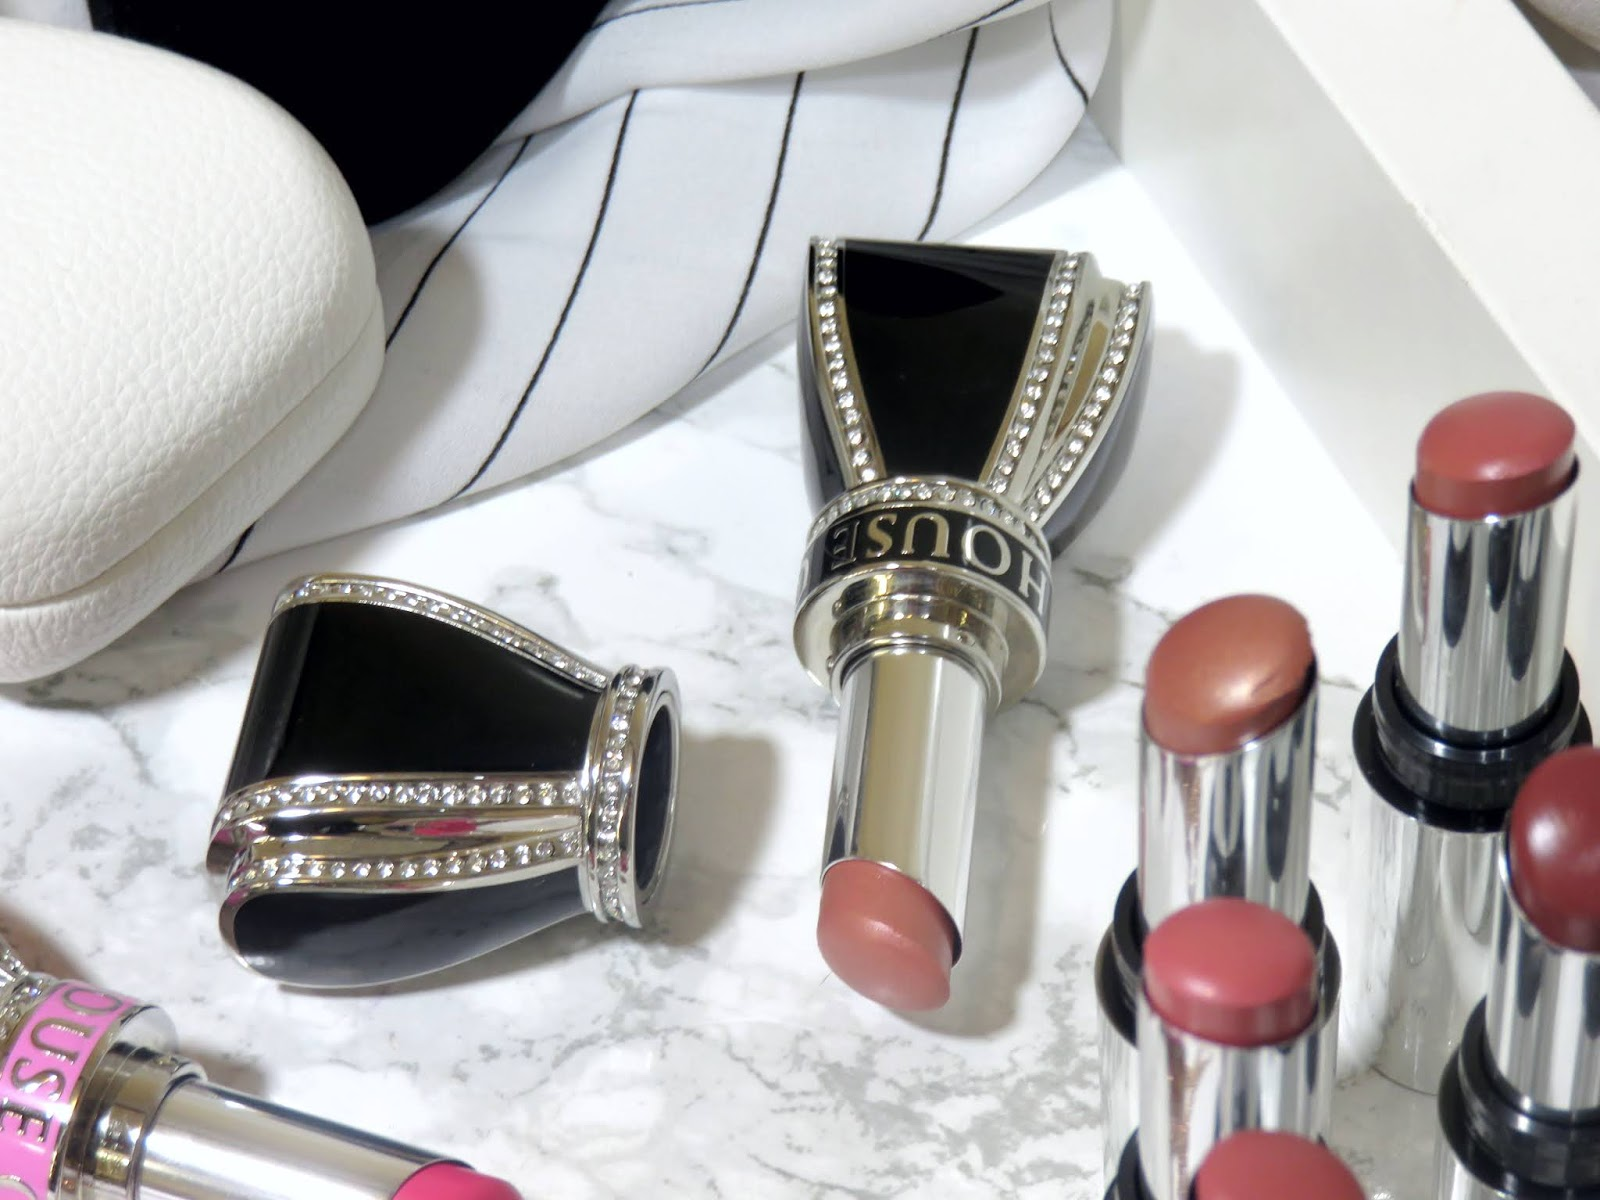 House of Sillage Bow Lipstick Case & Diamond Powder Satin Lipsticks